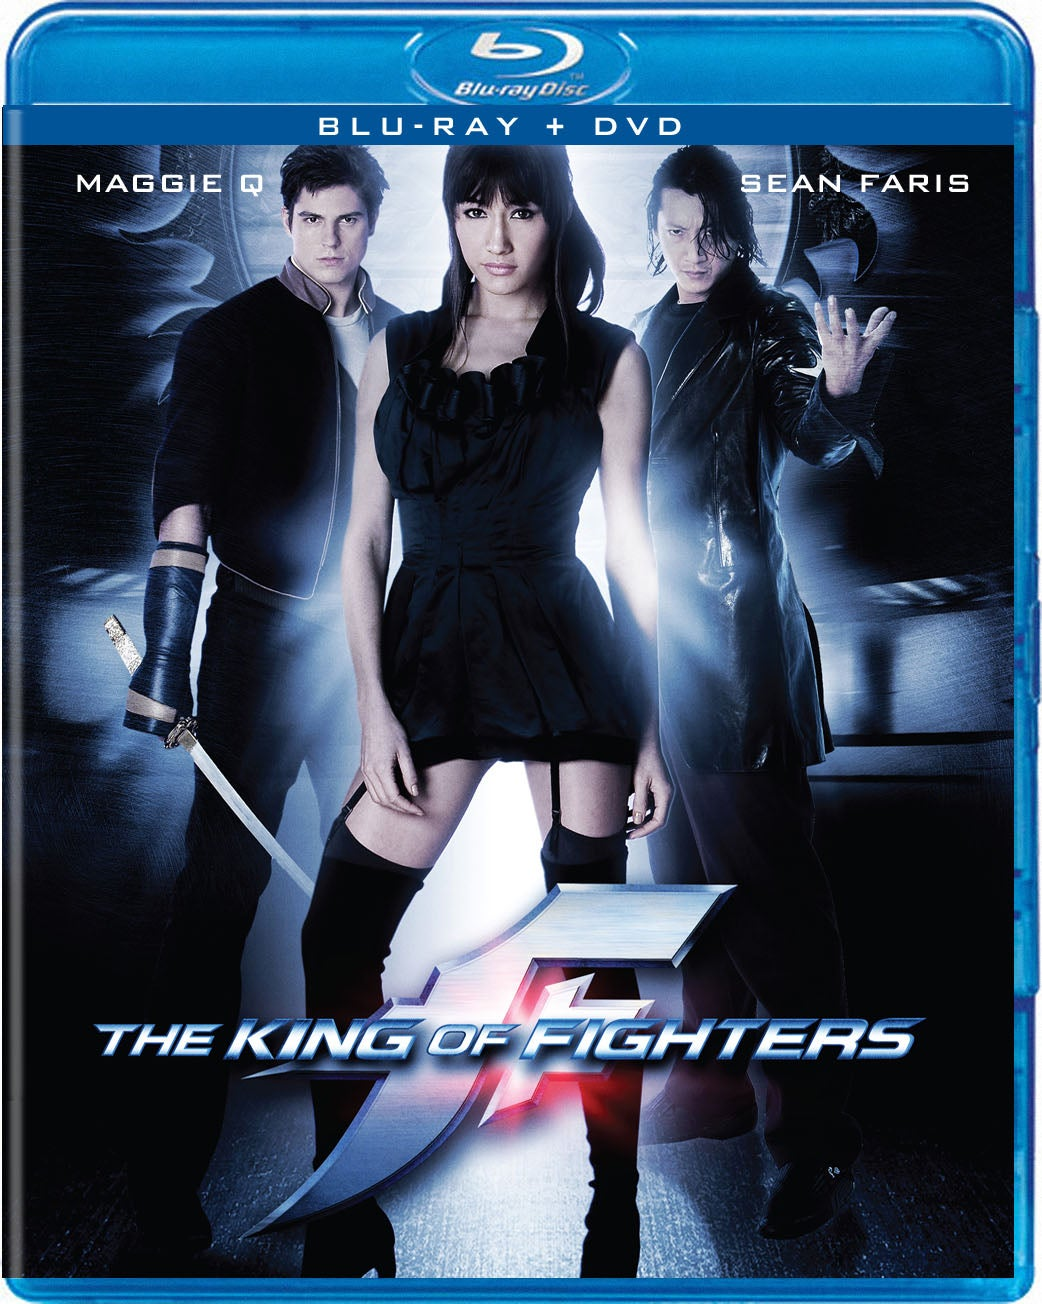 The King of Fighters (Blu-ray Disc)